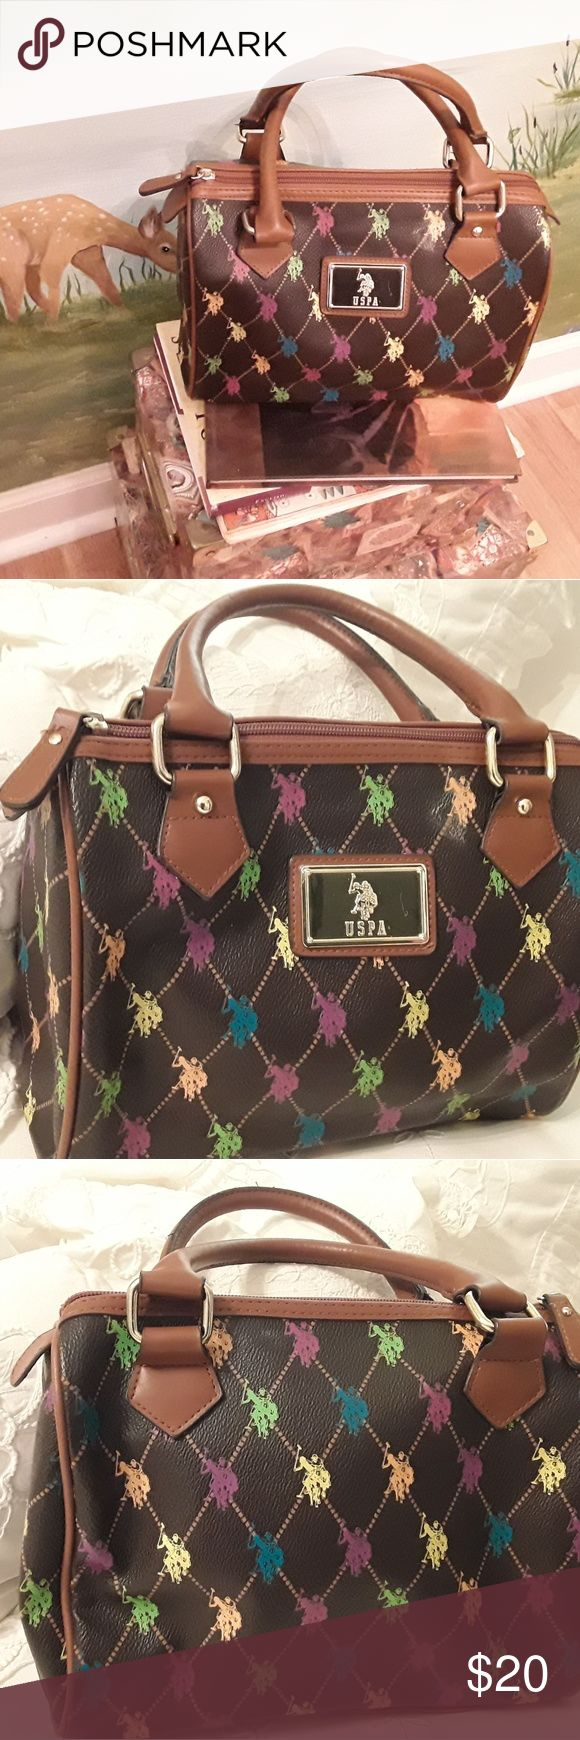 HANDBAG BY U.S. POLO ASSN. BROWN /MULTI COLOR I HAVE FOR SALE A BROWN /MULTI COLOR HANDBAG WITH GOLD HARDWARE.  THIS BAG IS IN LIKE NEW CONDITION, IT HAS NEVER BEEN USED. IT IS A GREAT SIZE IT CAN HOLD A LOT.   THE BAG HAS ZIPP TOP CLOSUR AND INSIDE IT HAS ON ONE SIDE A ZIP POCKET AND ON THE OTHER SIDE IT HAS TWO OPEN POCKETS FOR CELL PHONE ECT.  U.S.POLO ASSN. IS NOT AFFILIATED WITH POLO RALPH LAUREN.  IF YOU HAVE ANY QUESTIONS ABOUT THIS ITEM PLEASE ASK. THANKS FOR SHOPPING MY CLOSET. U…